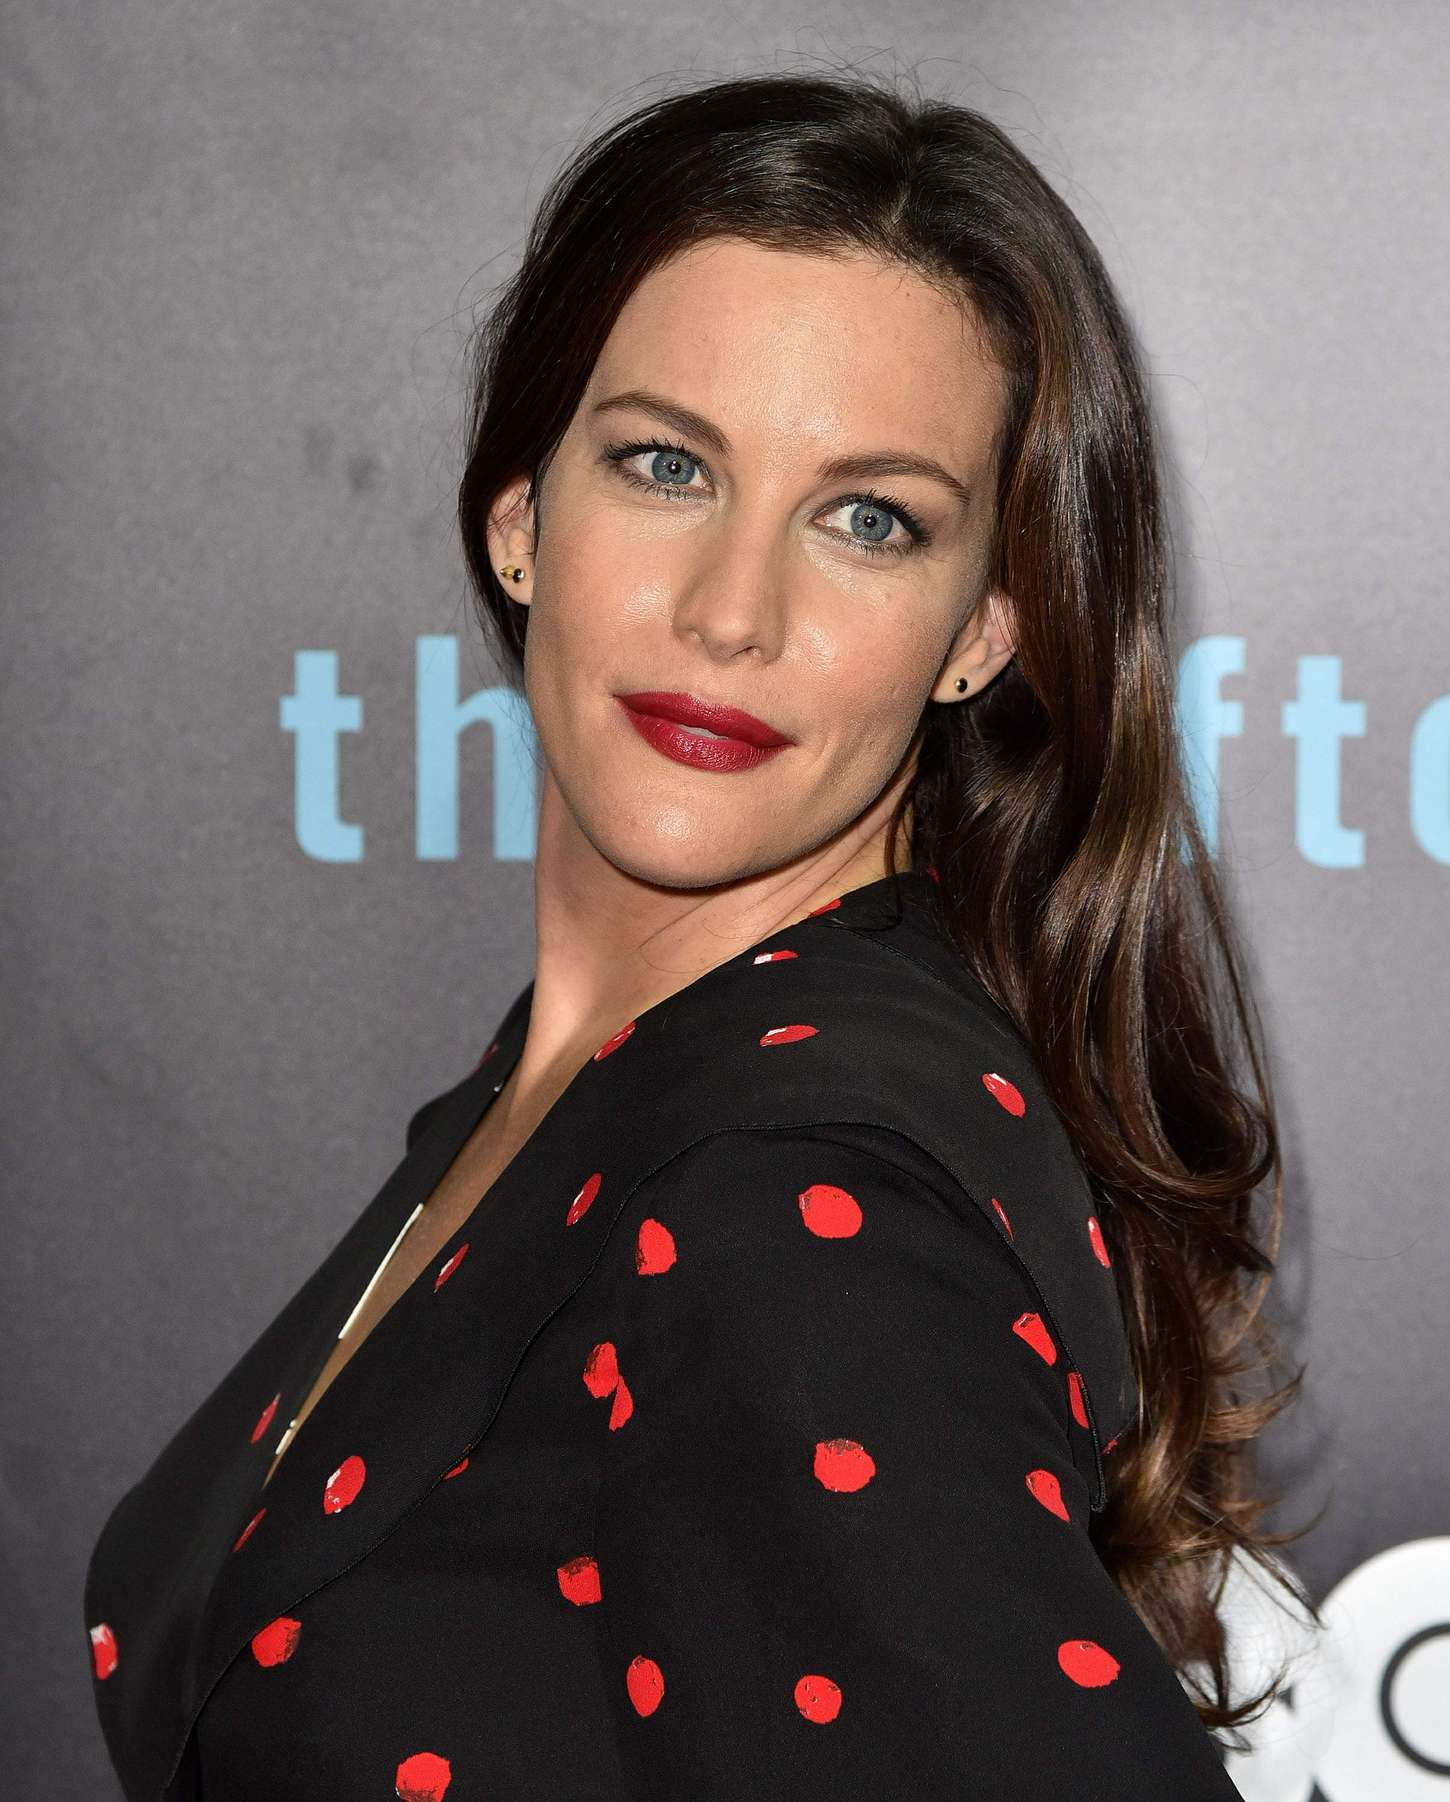 Liv Tyler The Leftovers Season Premiere in Austin